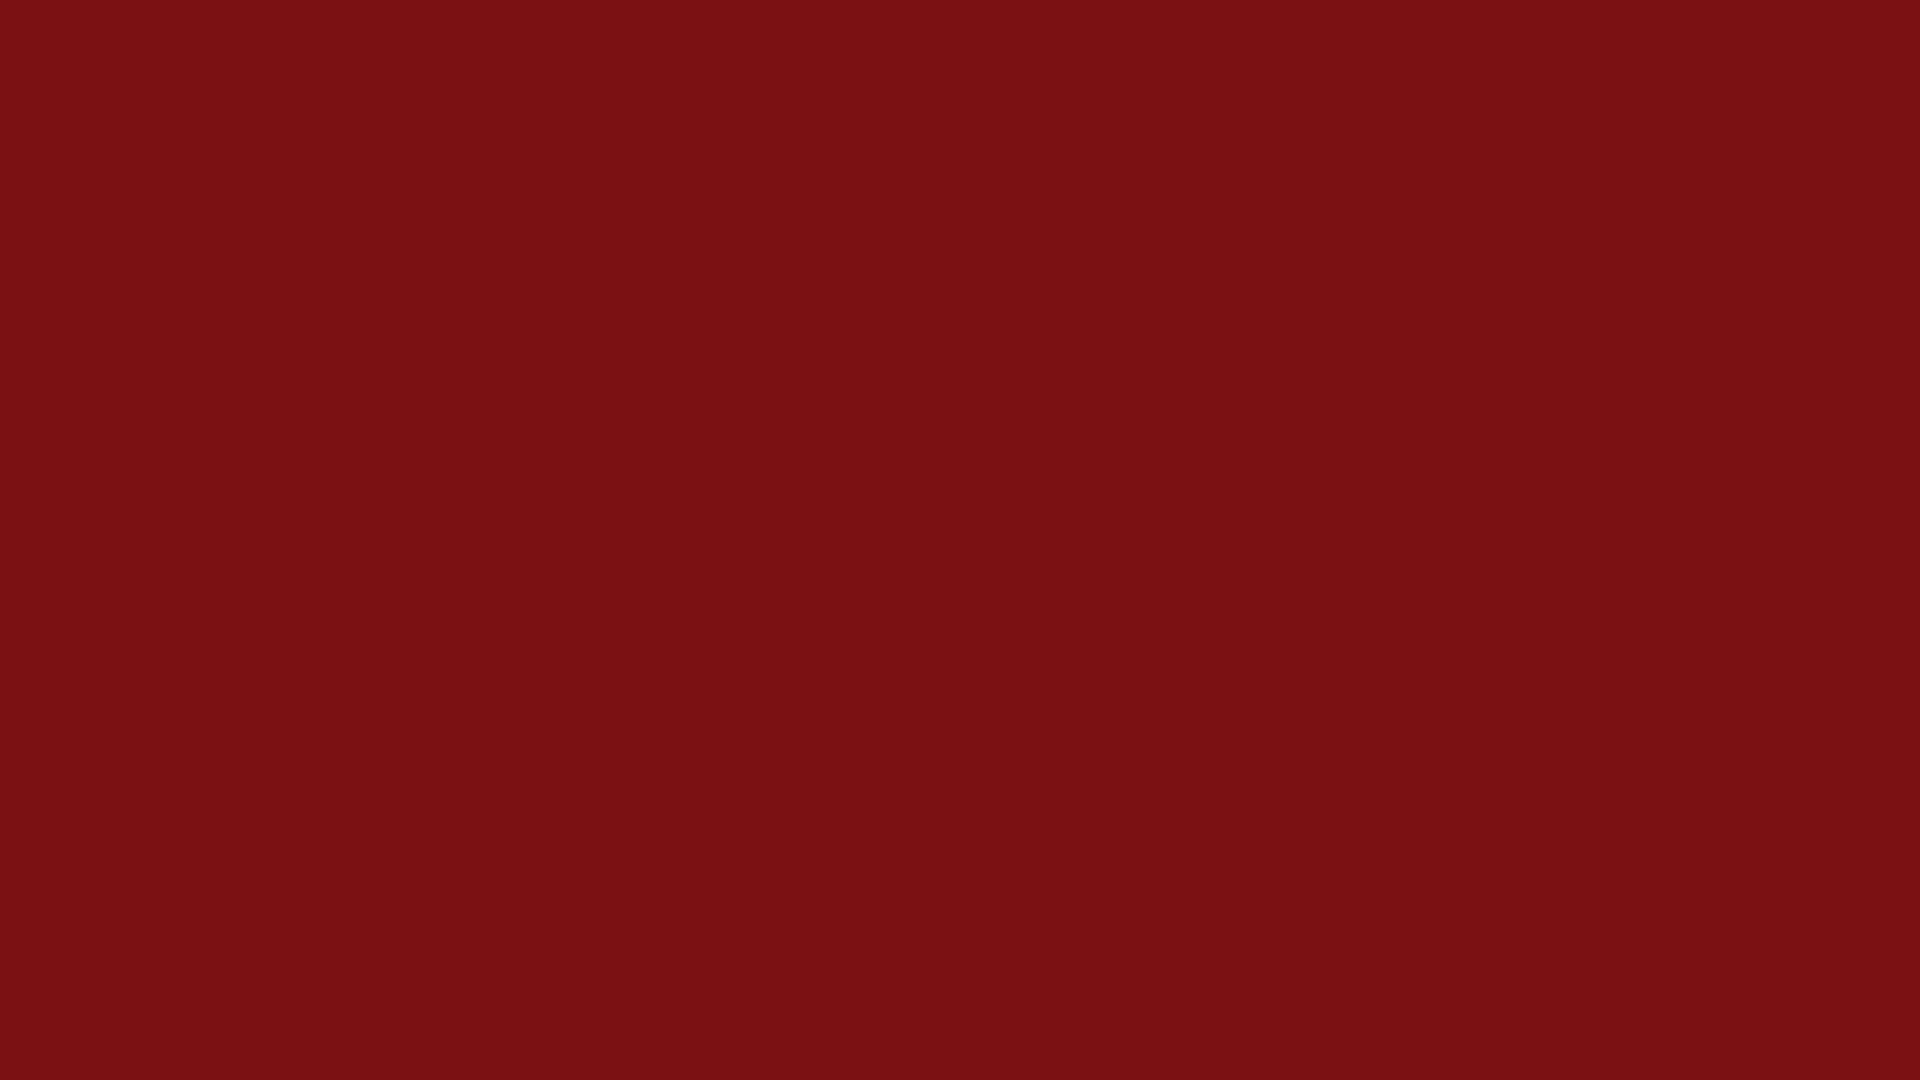 1920x1080 UP Maroon Solid Color Background